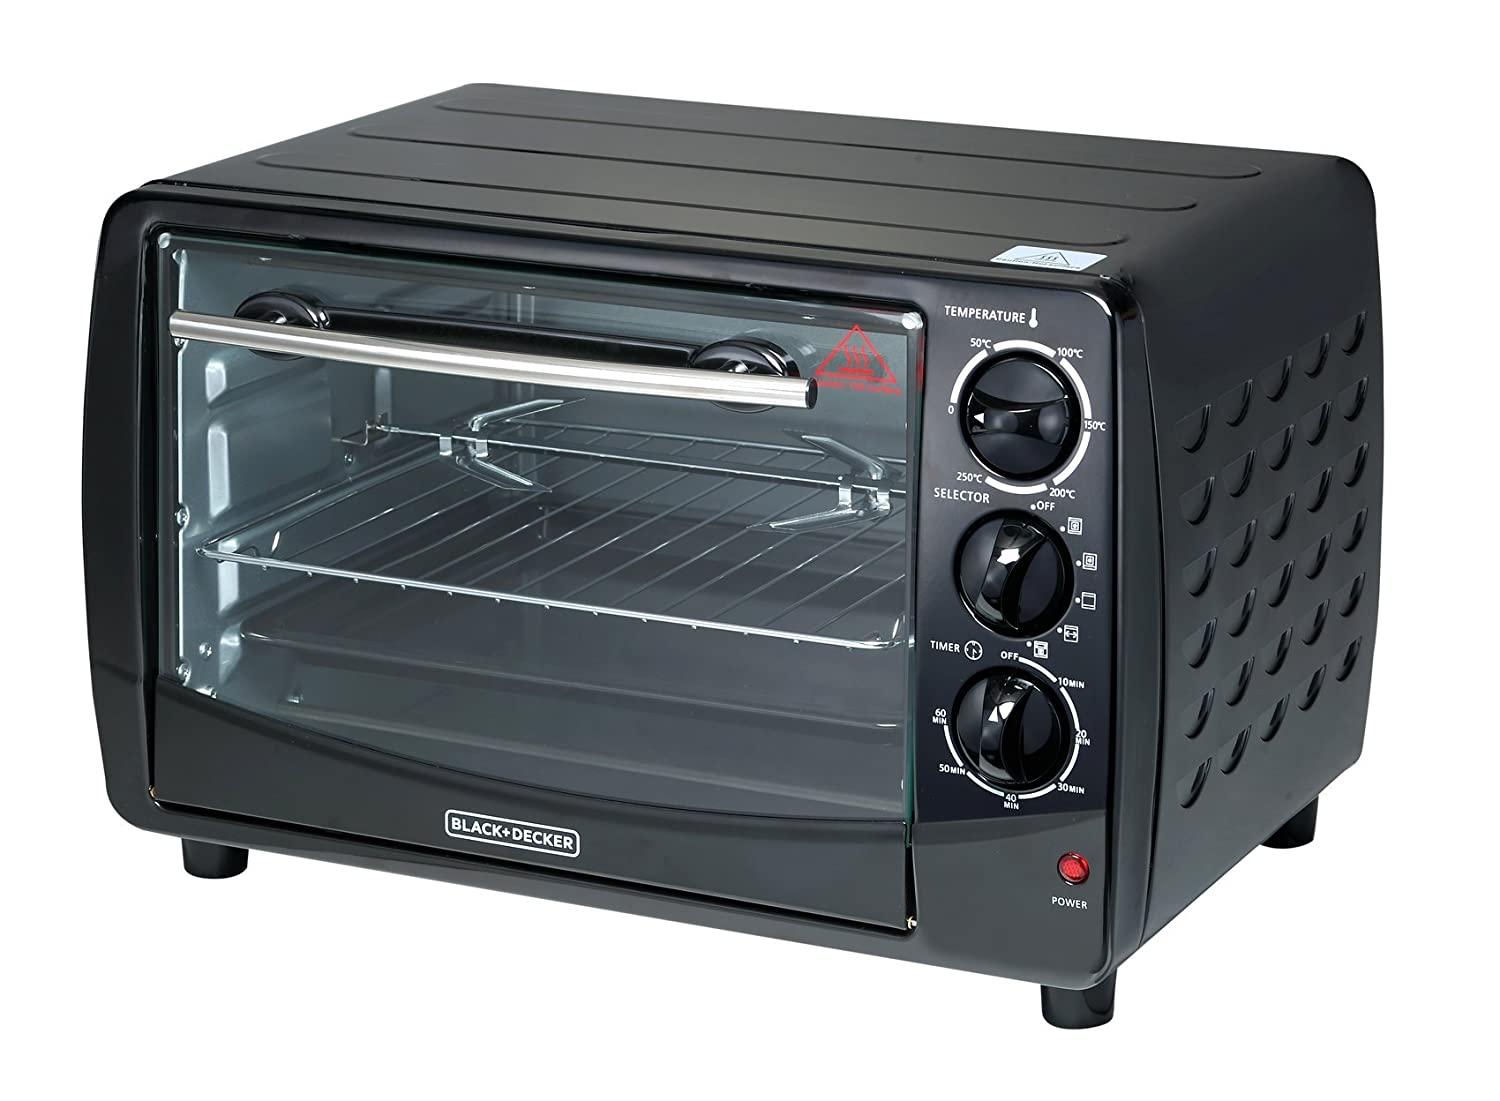 Black & Decker TRO50 28-Liter Toaster Oven 220 Volts (Not for USA) Large Black